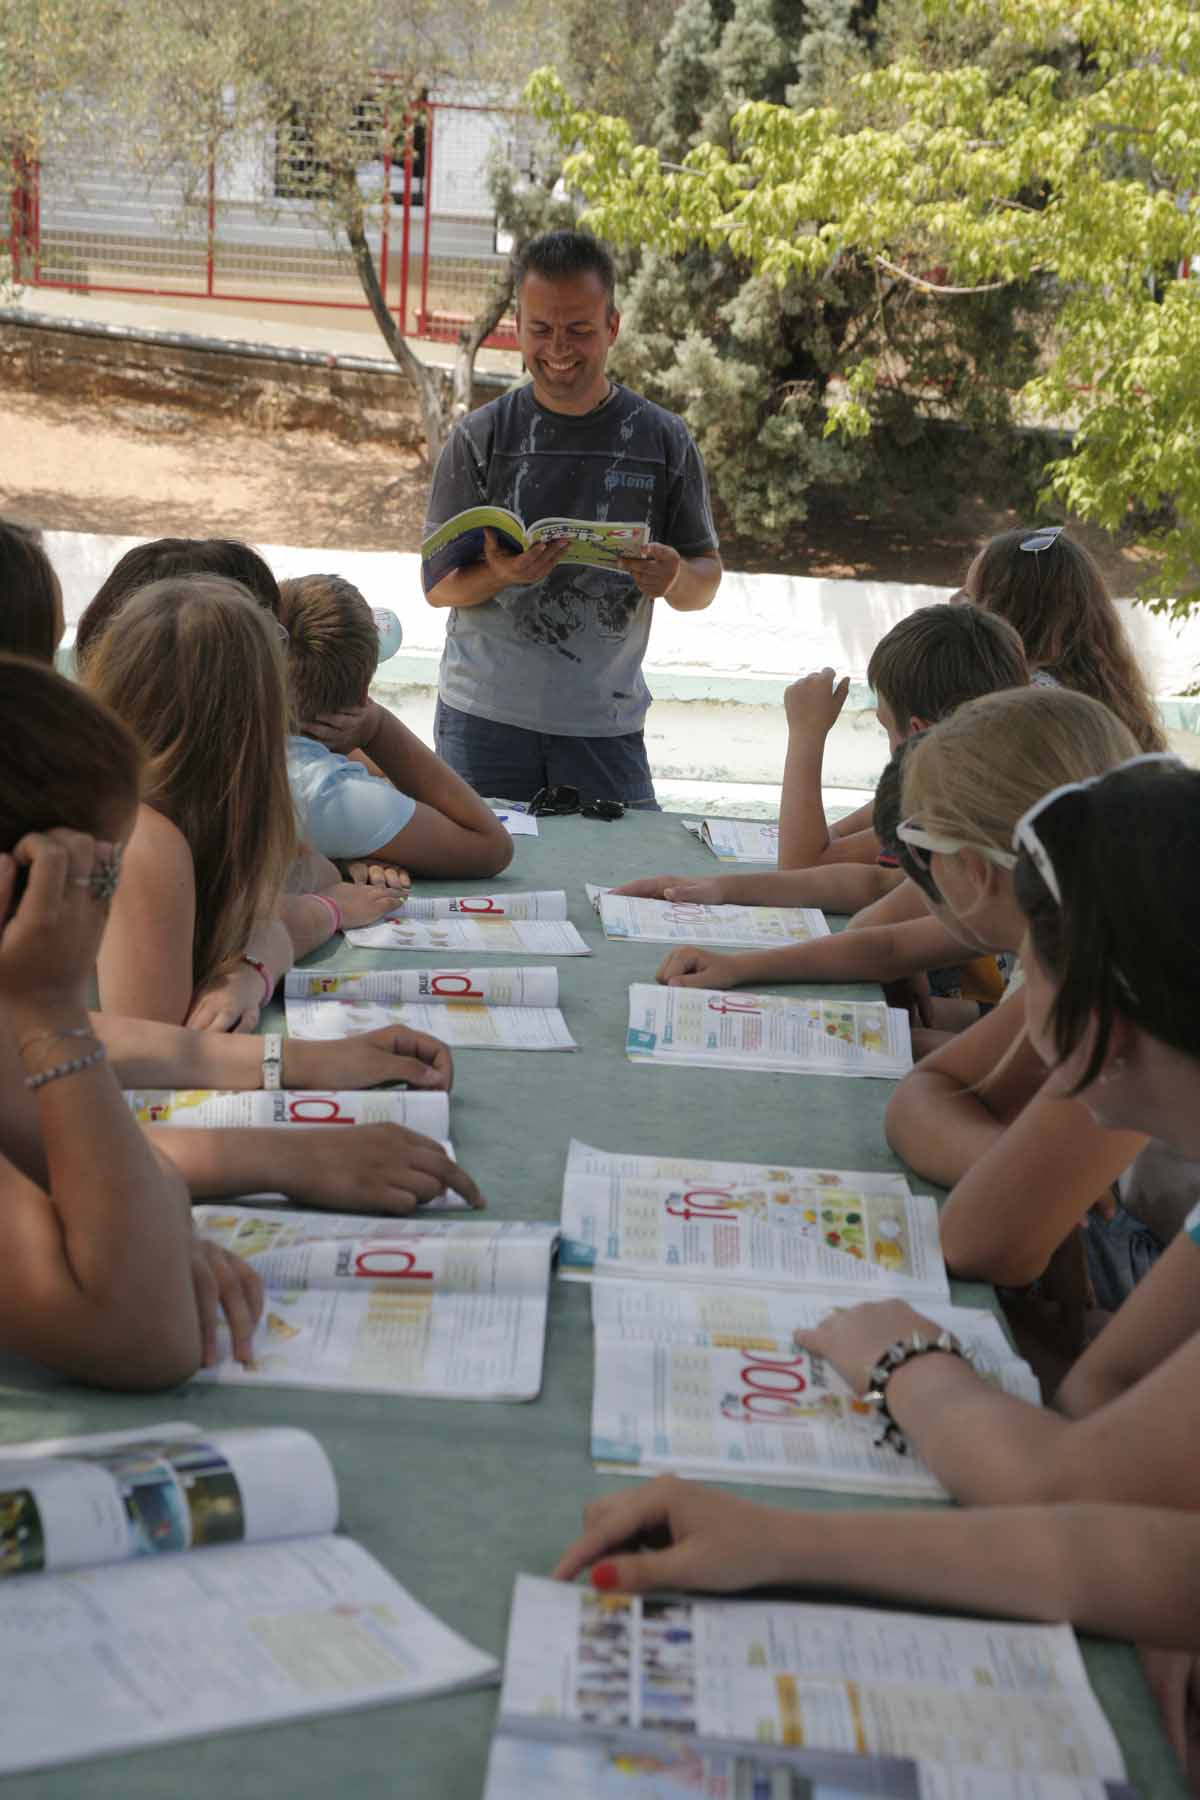 Skouras Sports and Language Camp